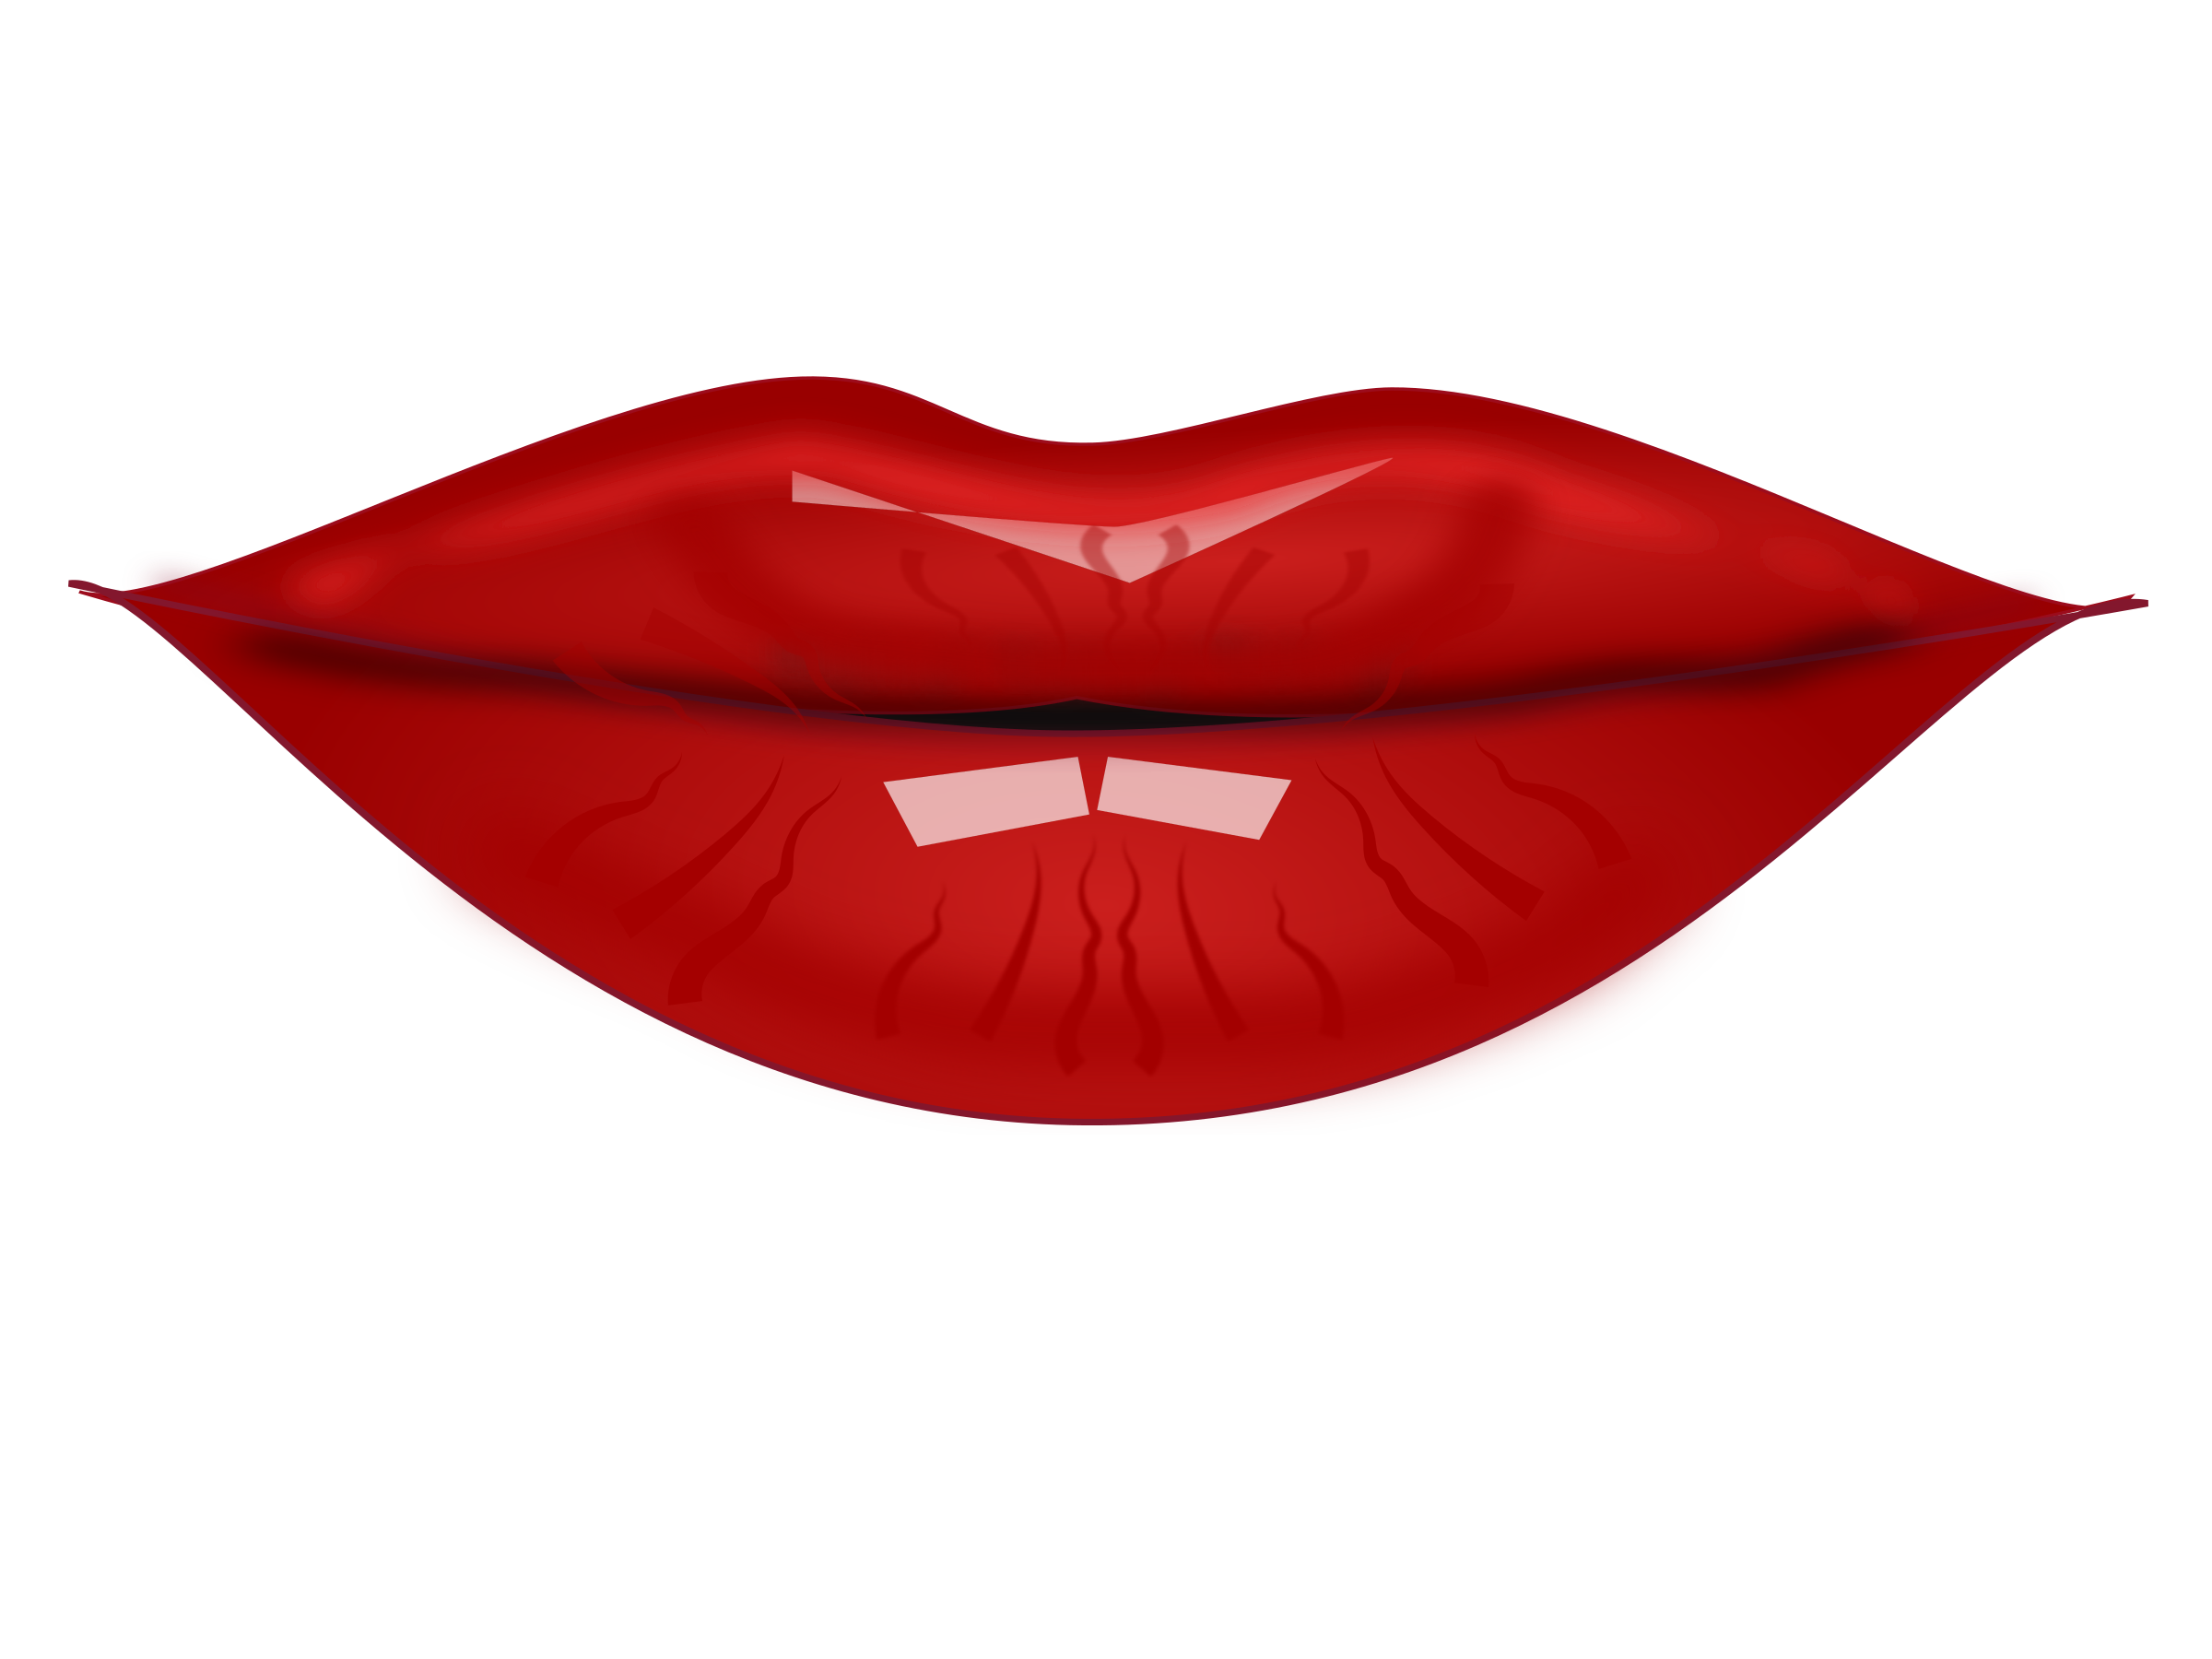 Red lip clipart.